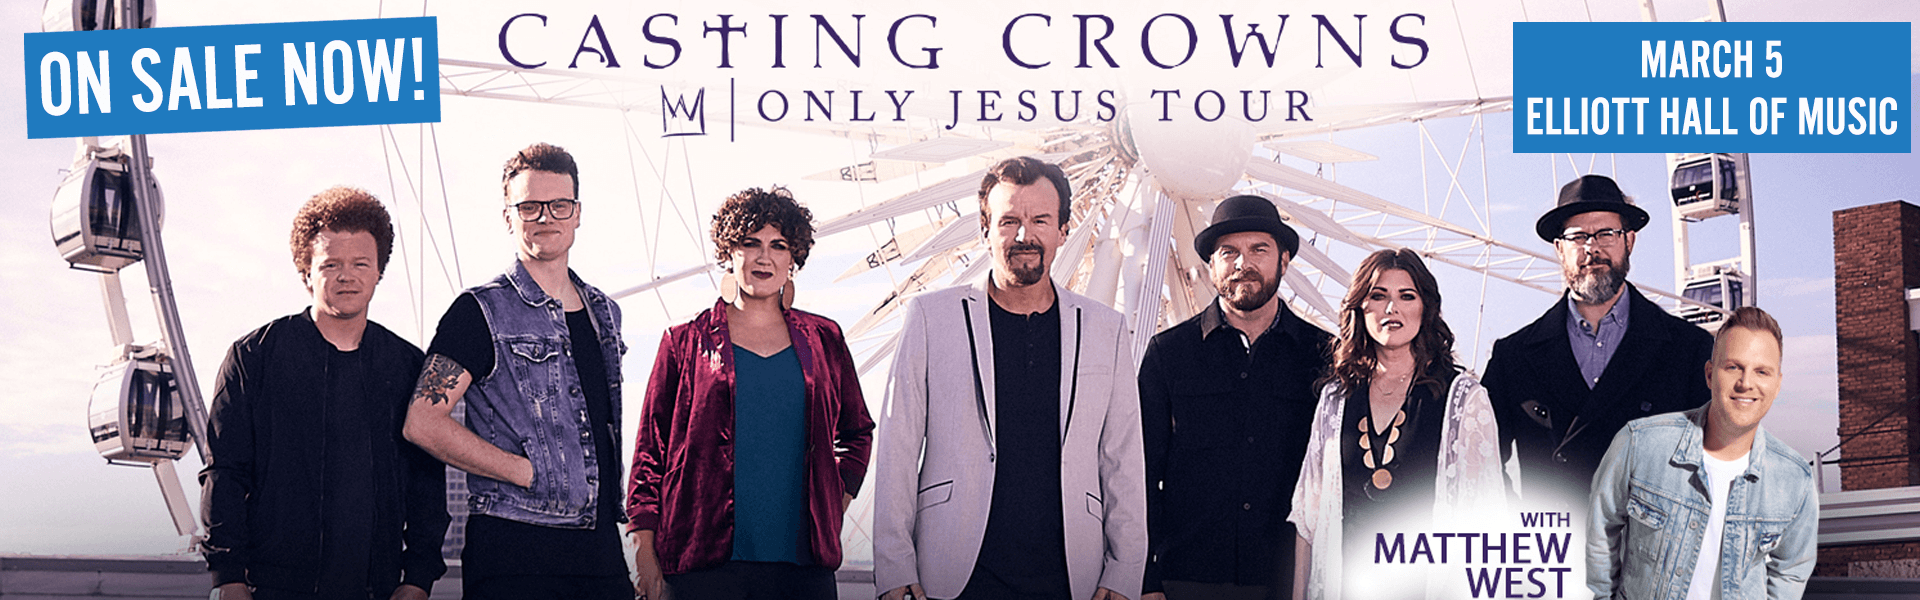 Casting Crowns on sale now